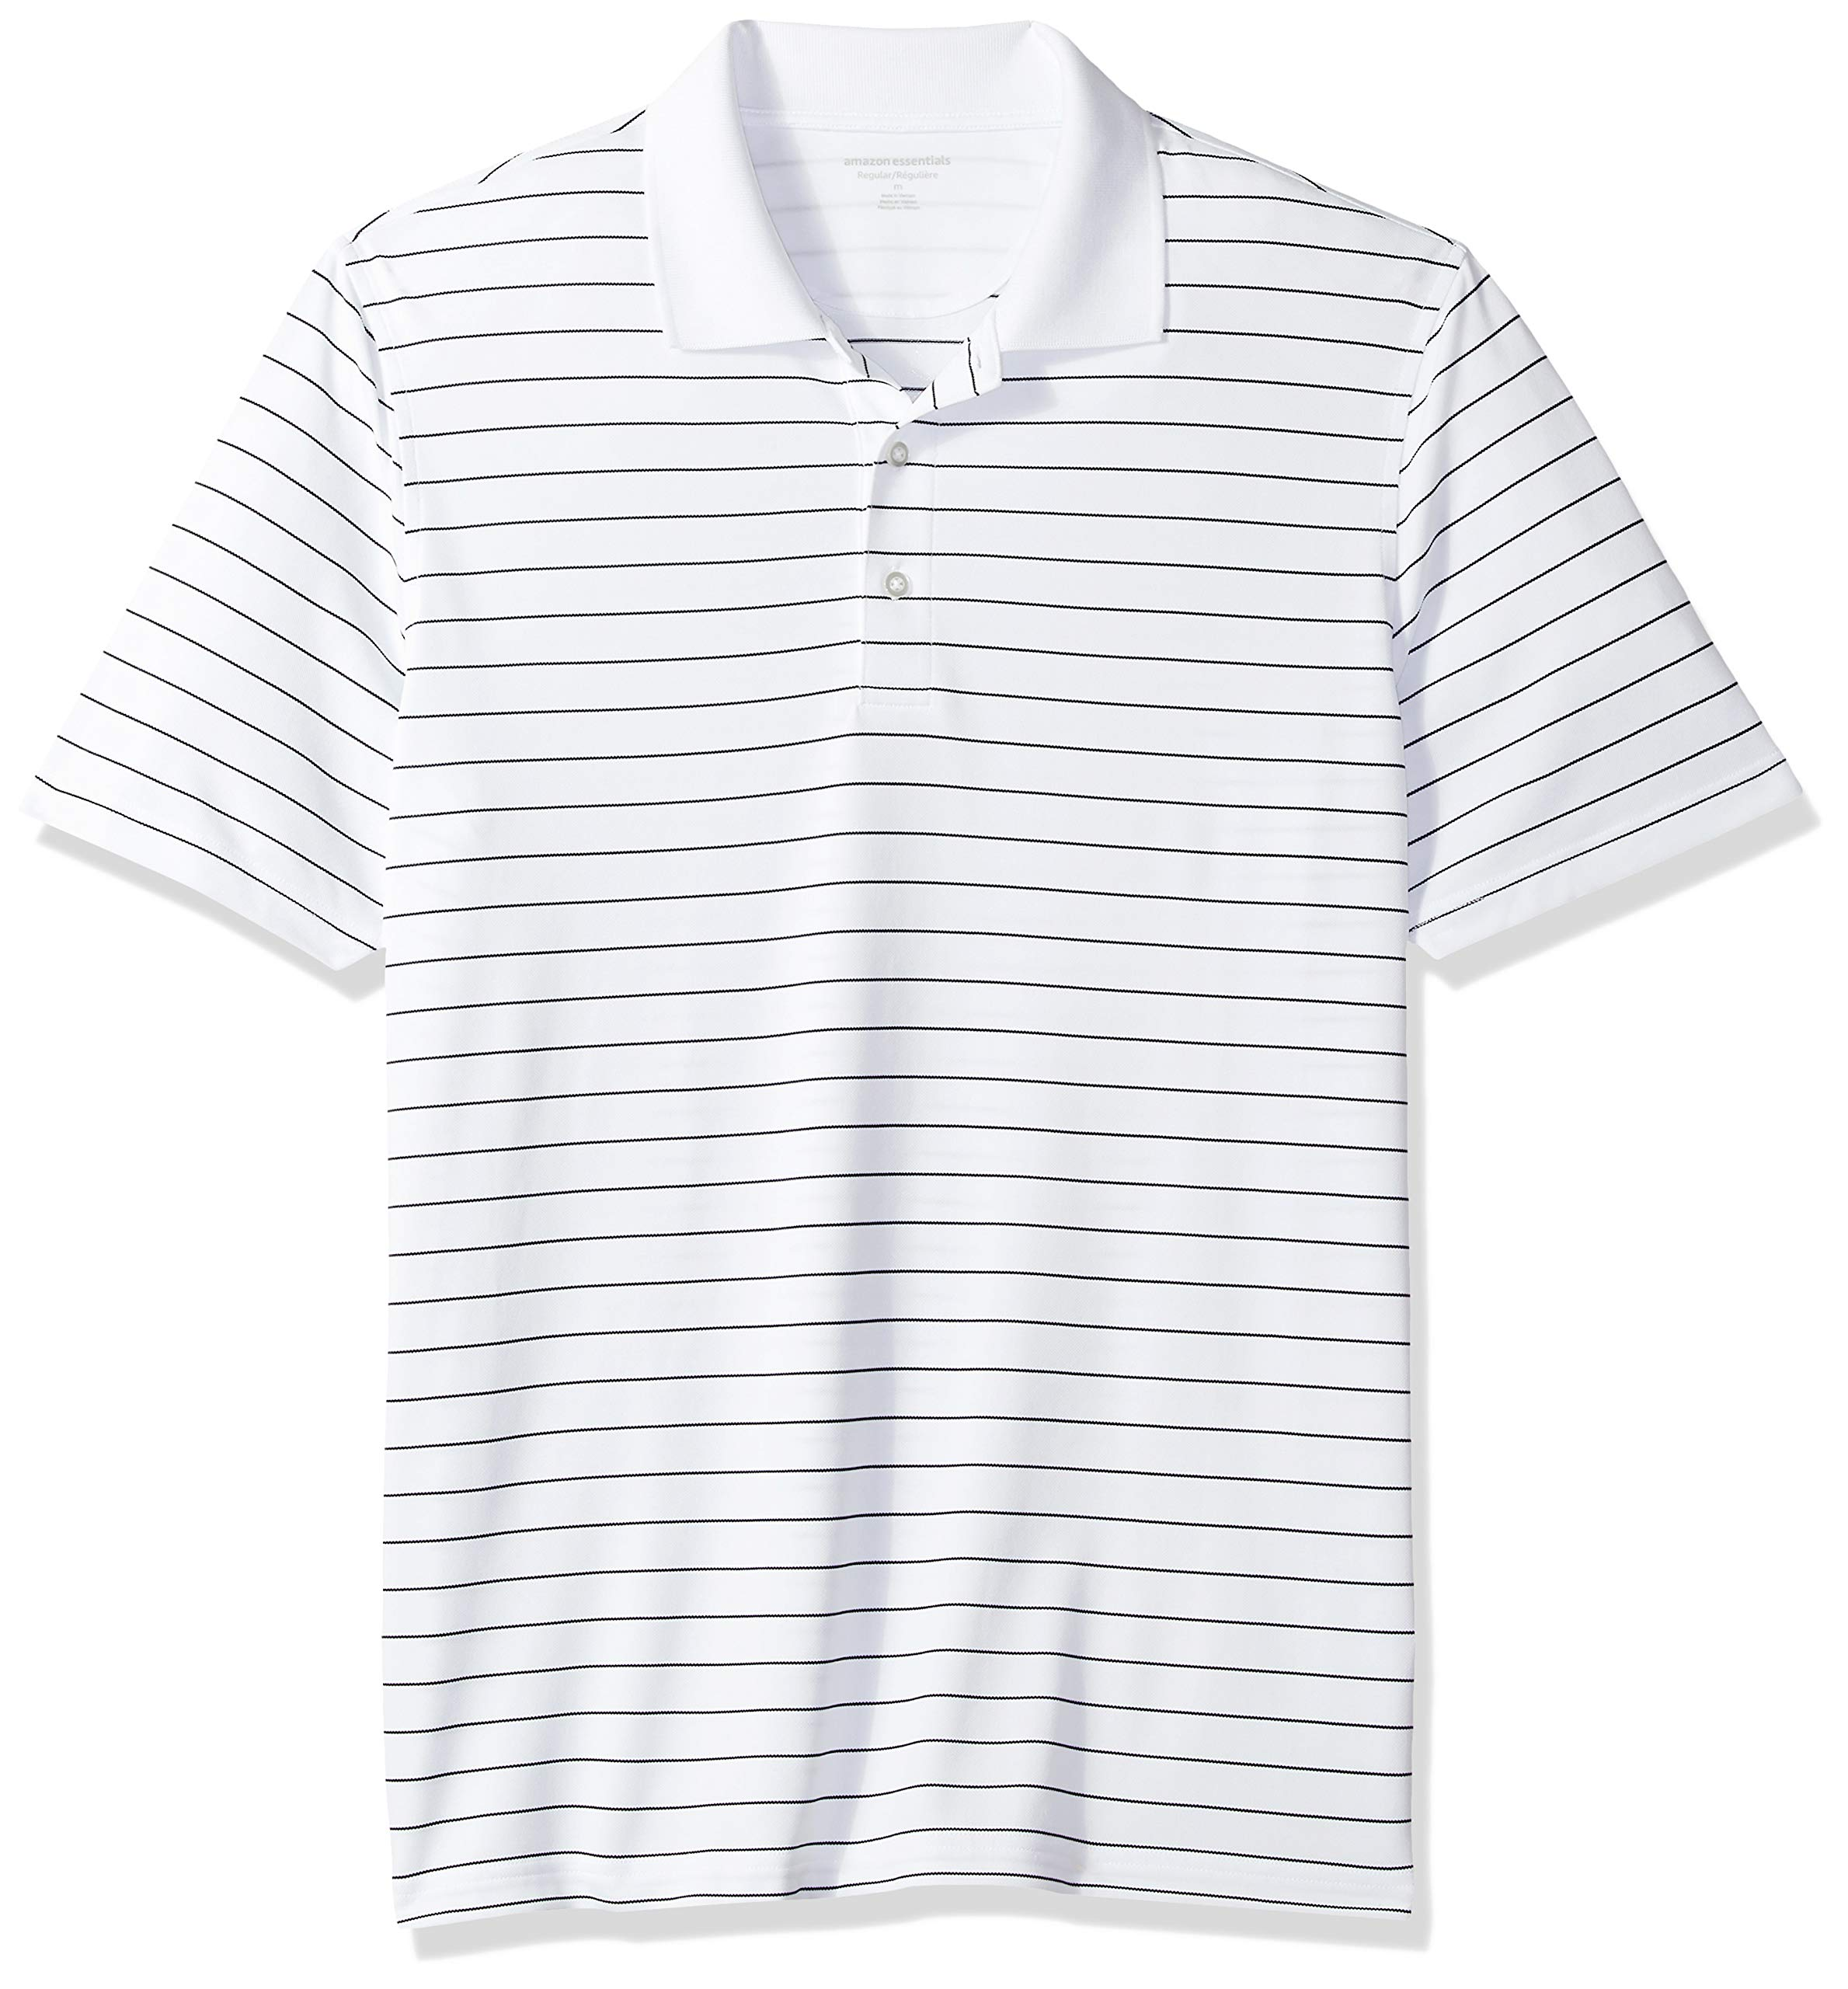 Amazon Essentials Men's Regular-Fit Quick-Dry Golf Polo Shirt, White Stripe, Small by Amazon Essentials